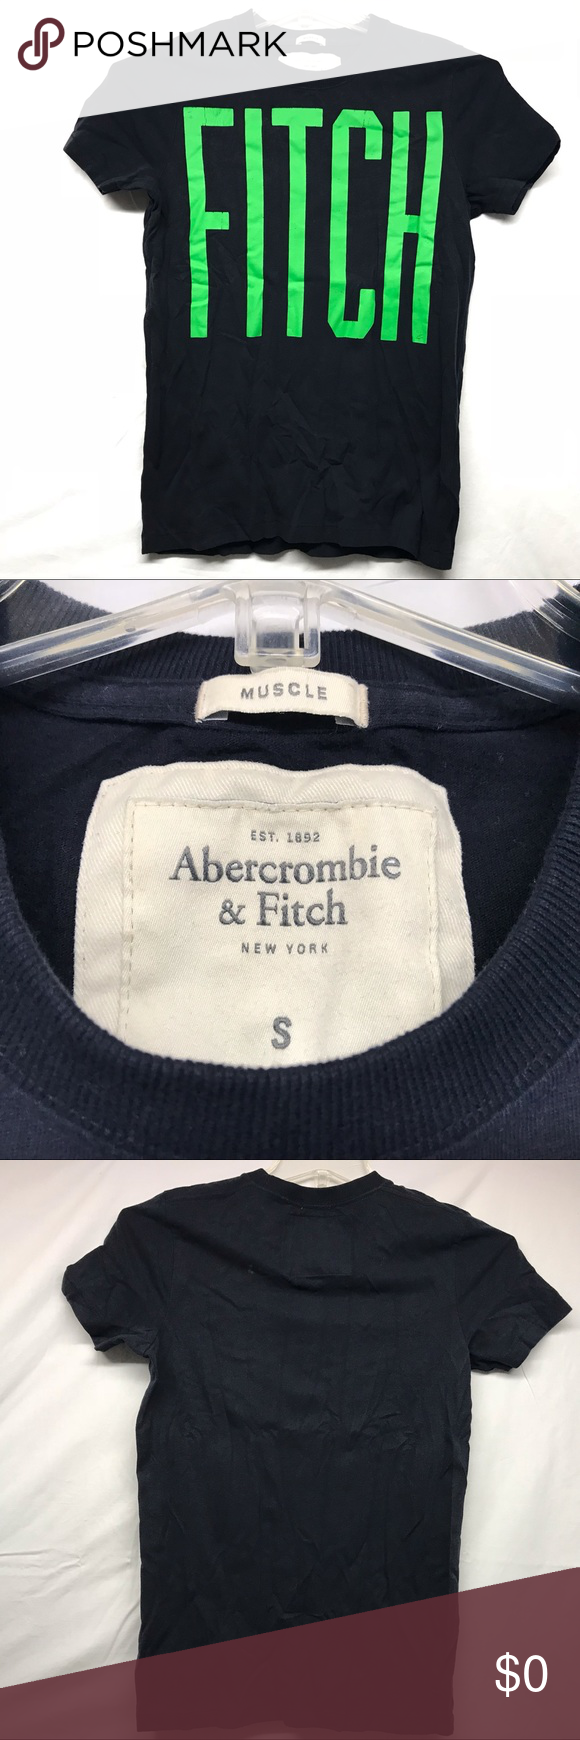 cf0b2901 Abercrombie & Fitch New York Mens S Muscle Shirt Item: Abercrombie and Fitch  New York Mens Small Muscle Tee Shirt Green Lettering Condition: Great used  ...